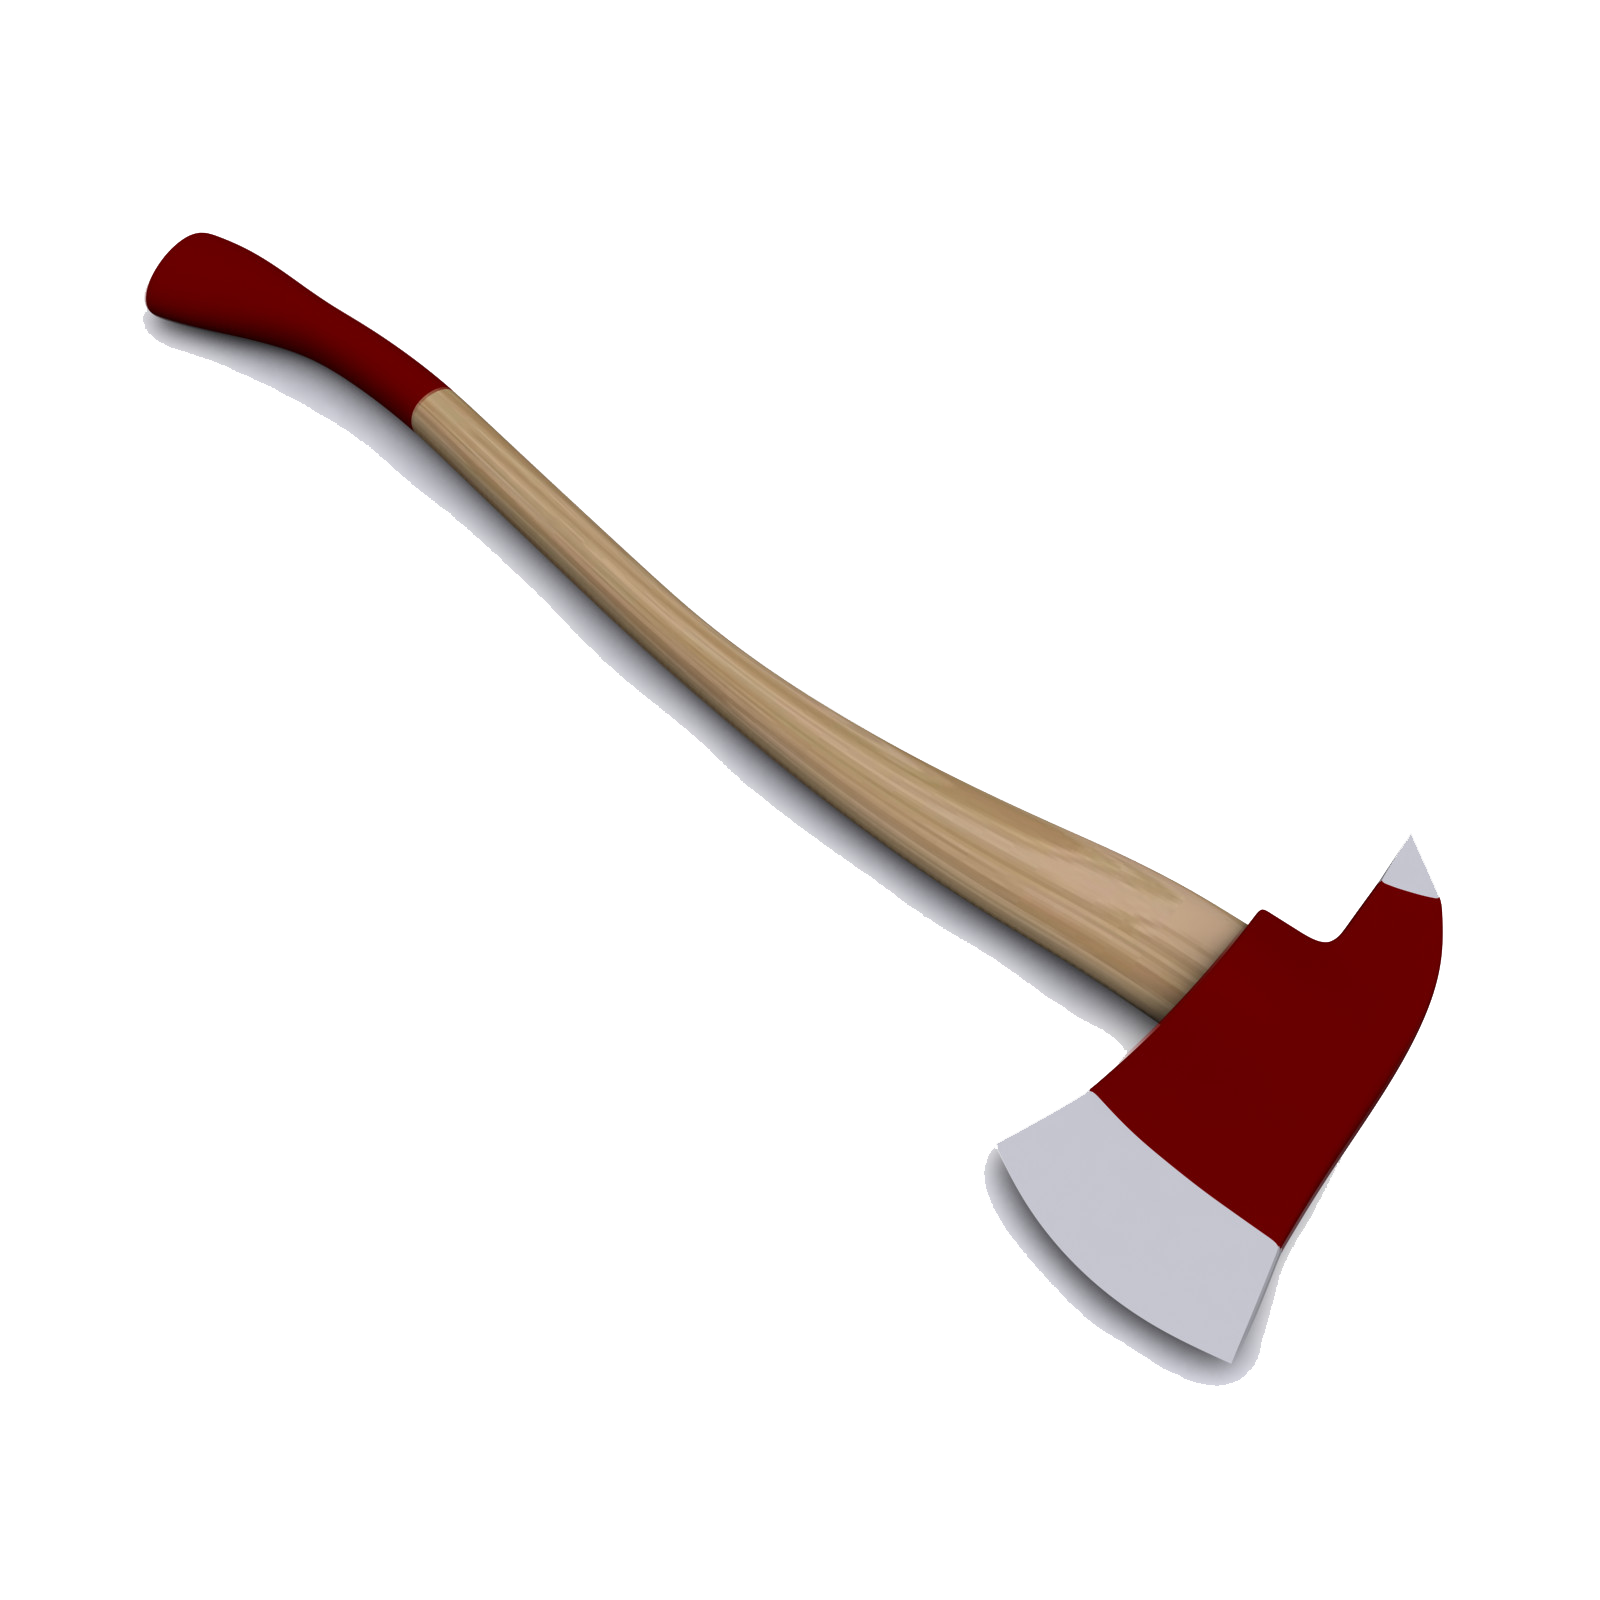 Axe PNG Transparent Images.